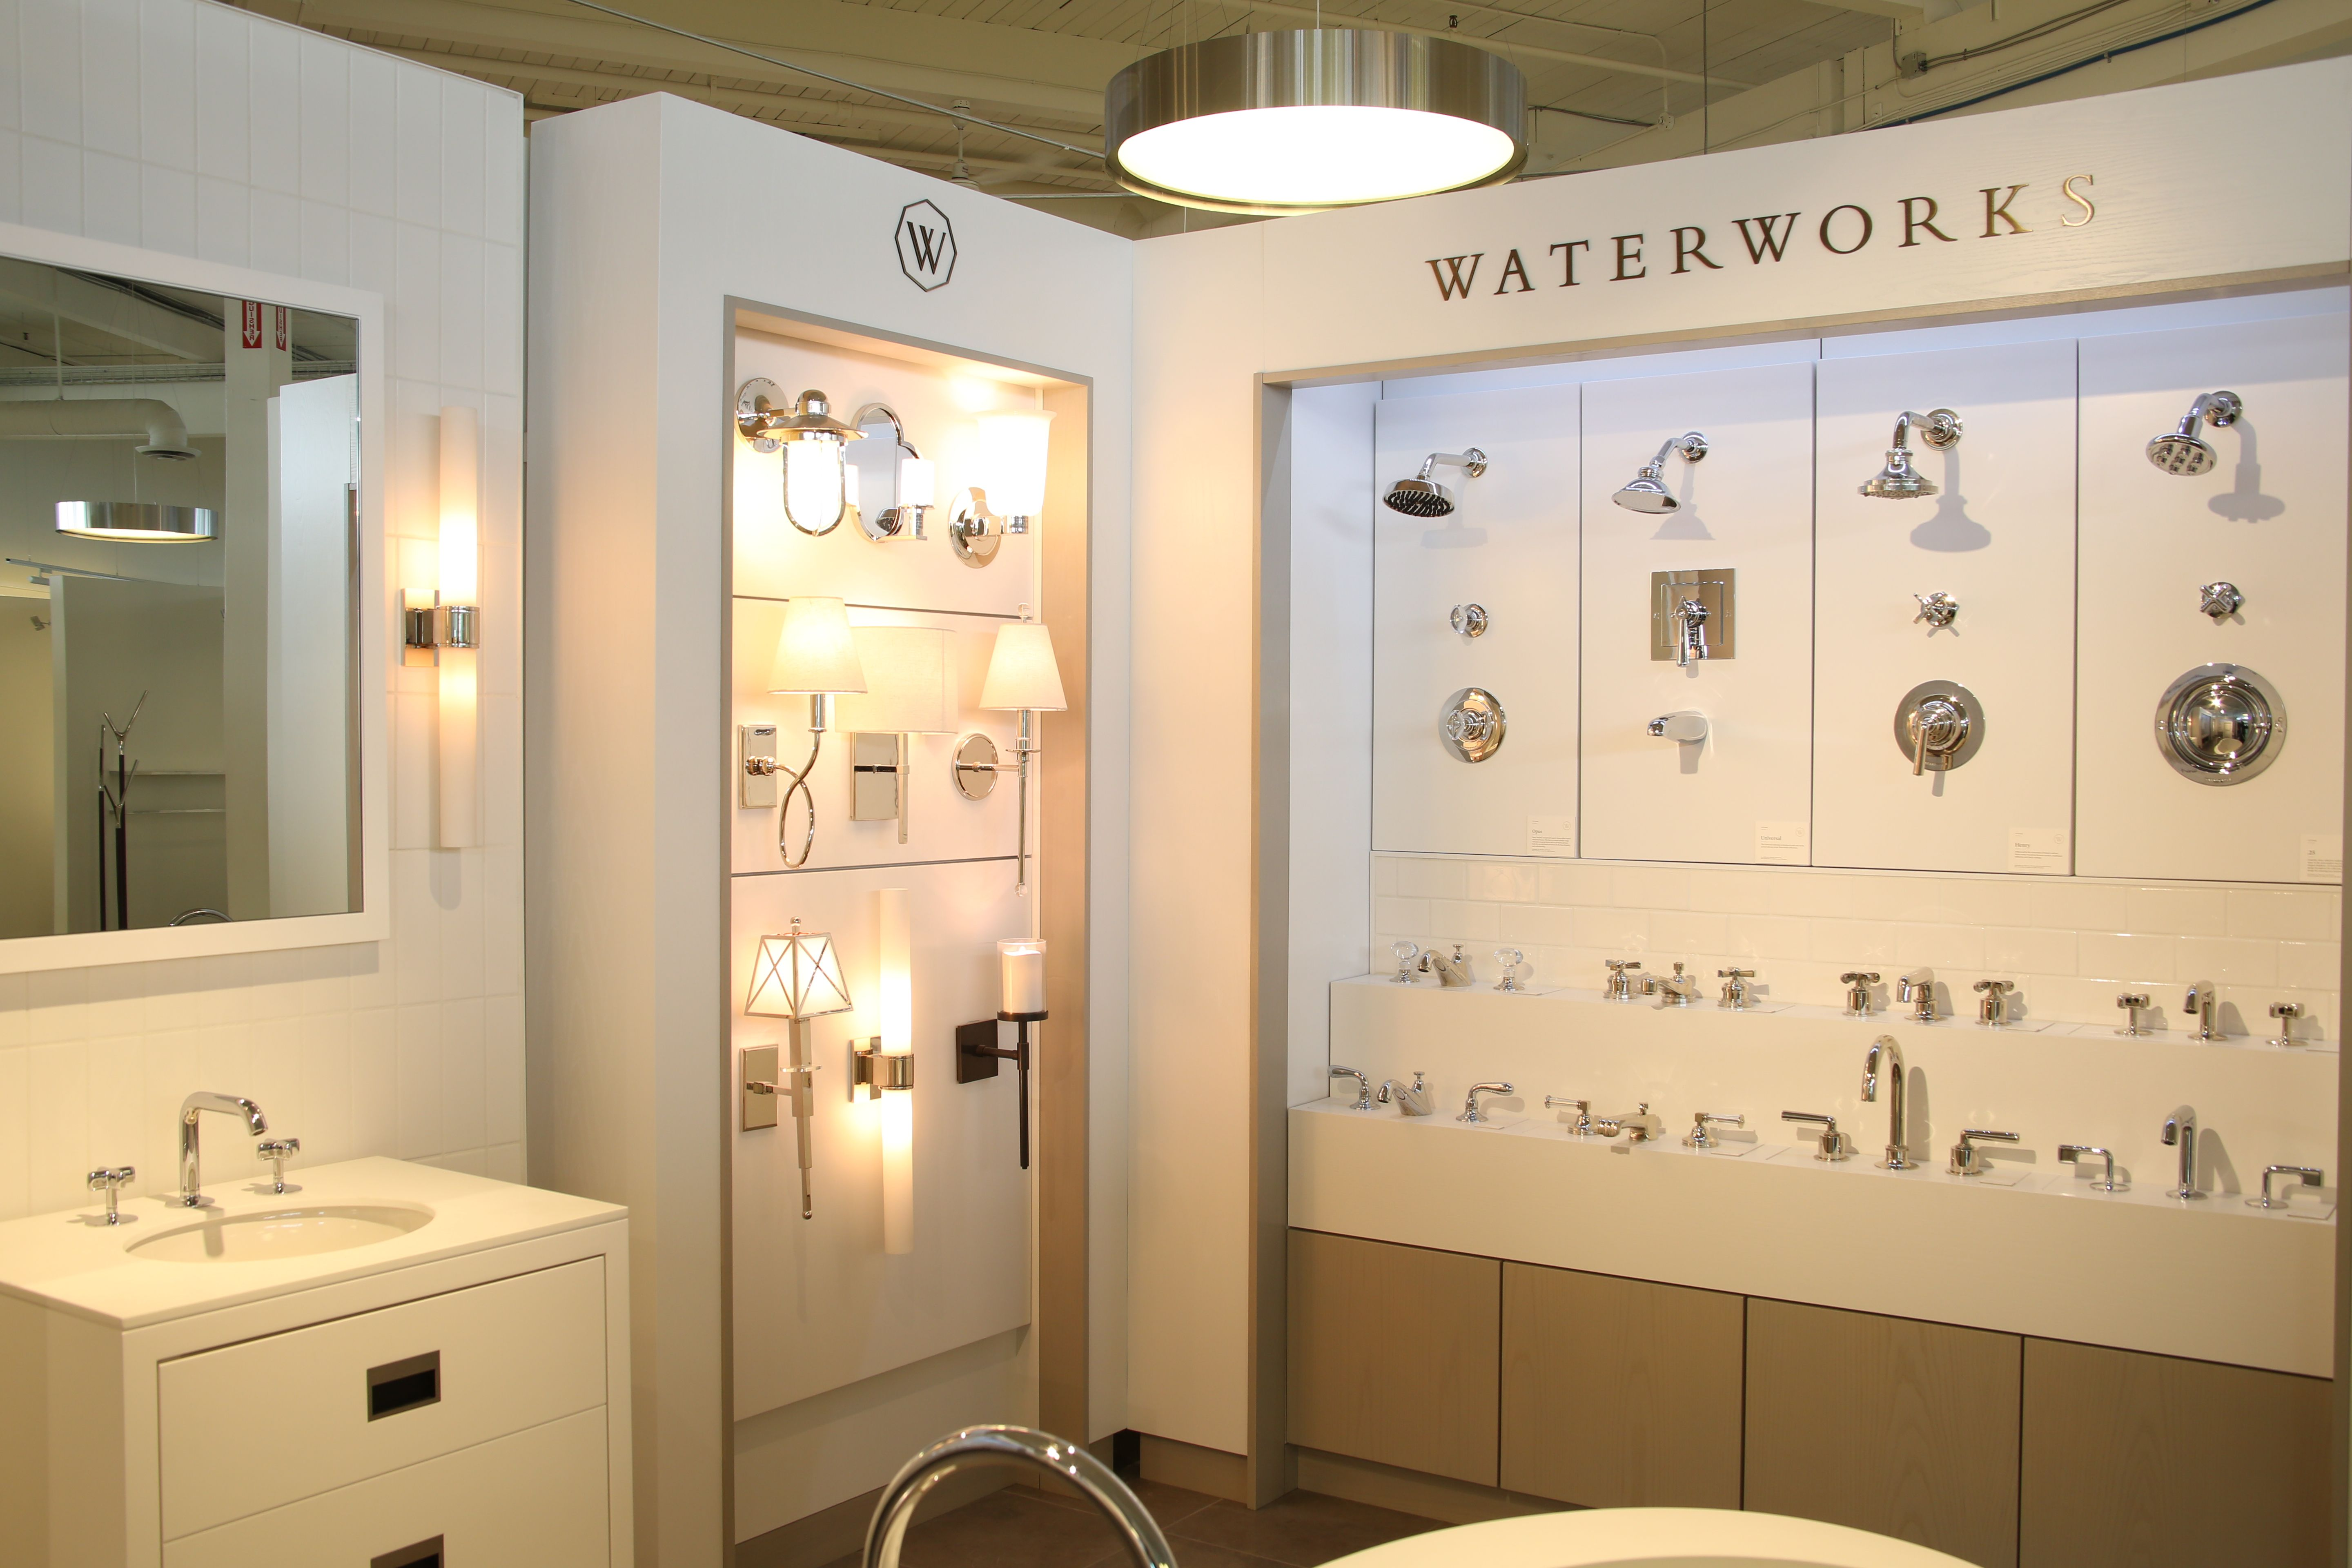 We Offer The Best In Home Decorative Plumbing, Decorative Hardware At  Discount Prices.